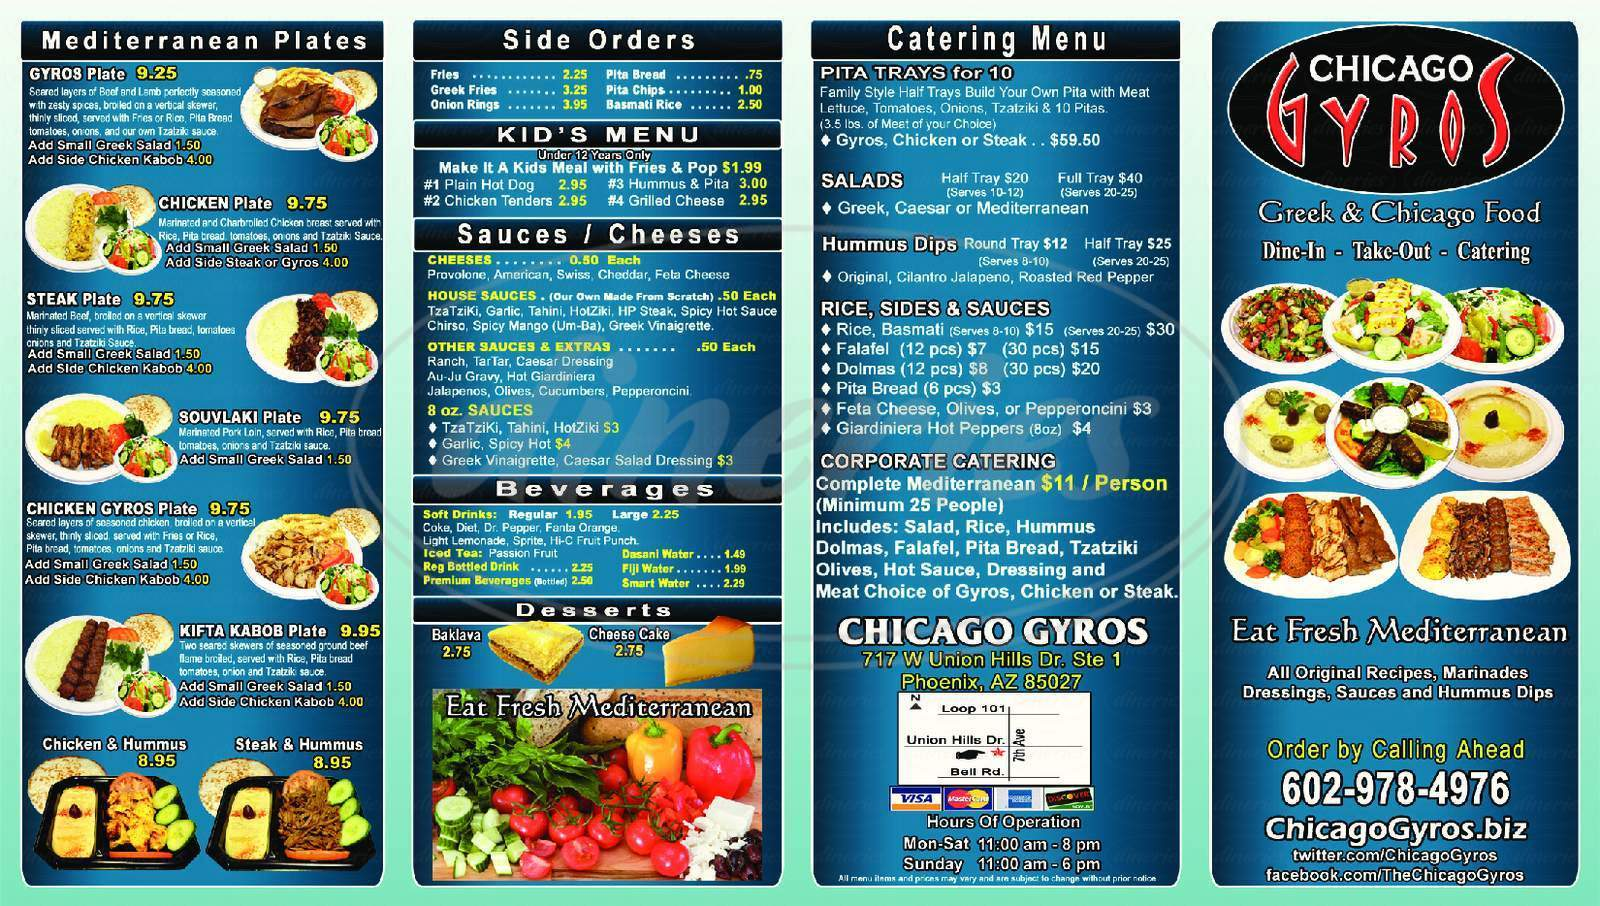 menu for Chicago Gyros